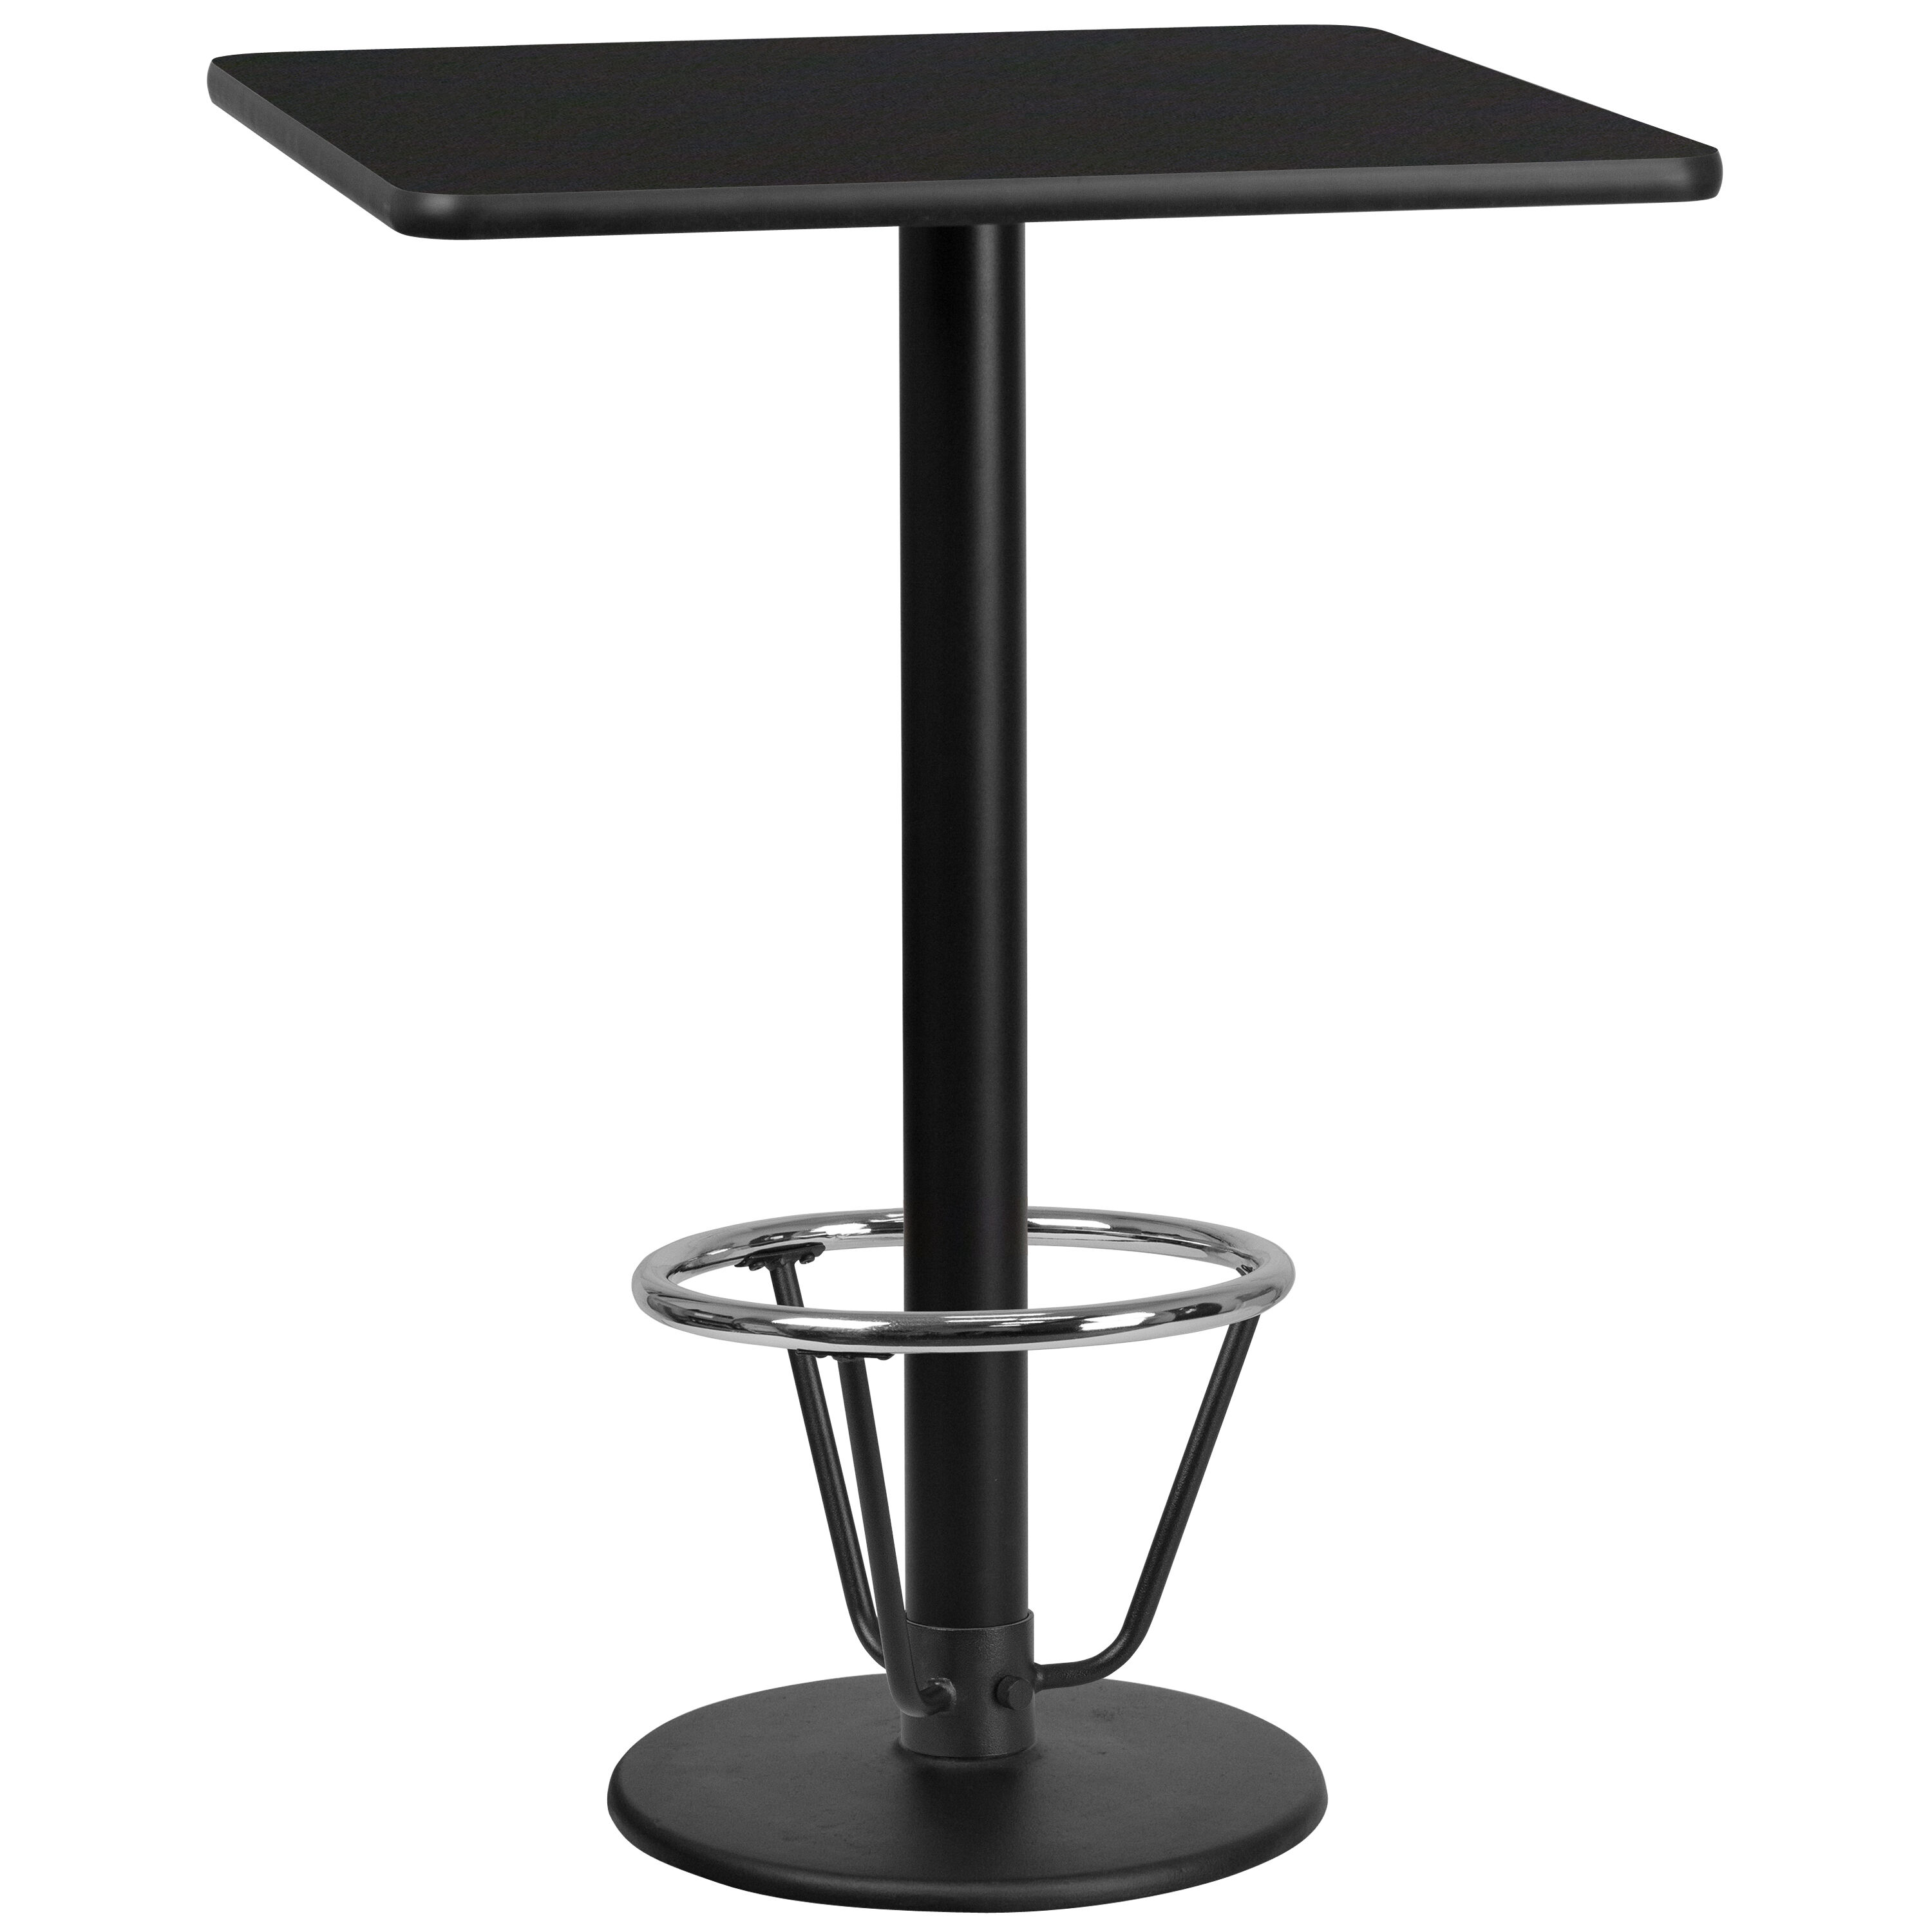 Exceptionnel ... Our 30u0027u0027 Square Black Laminate Table Top With 18u0027u0027 Round Bar Height